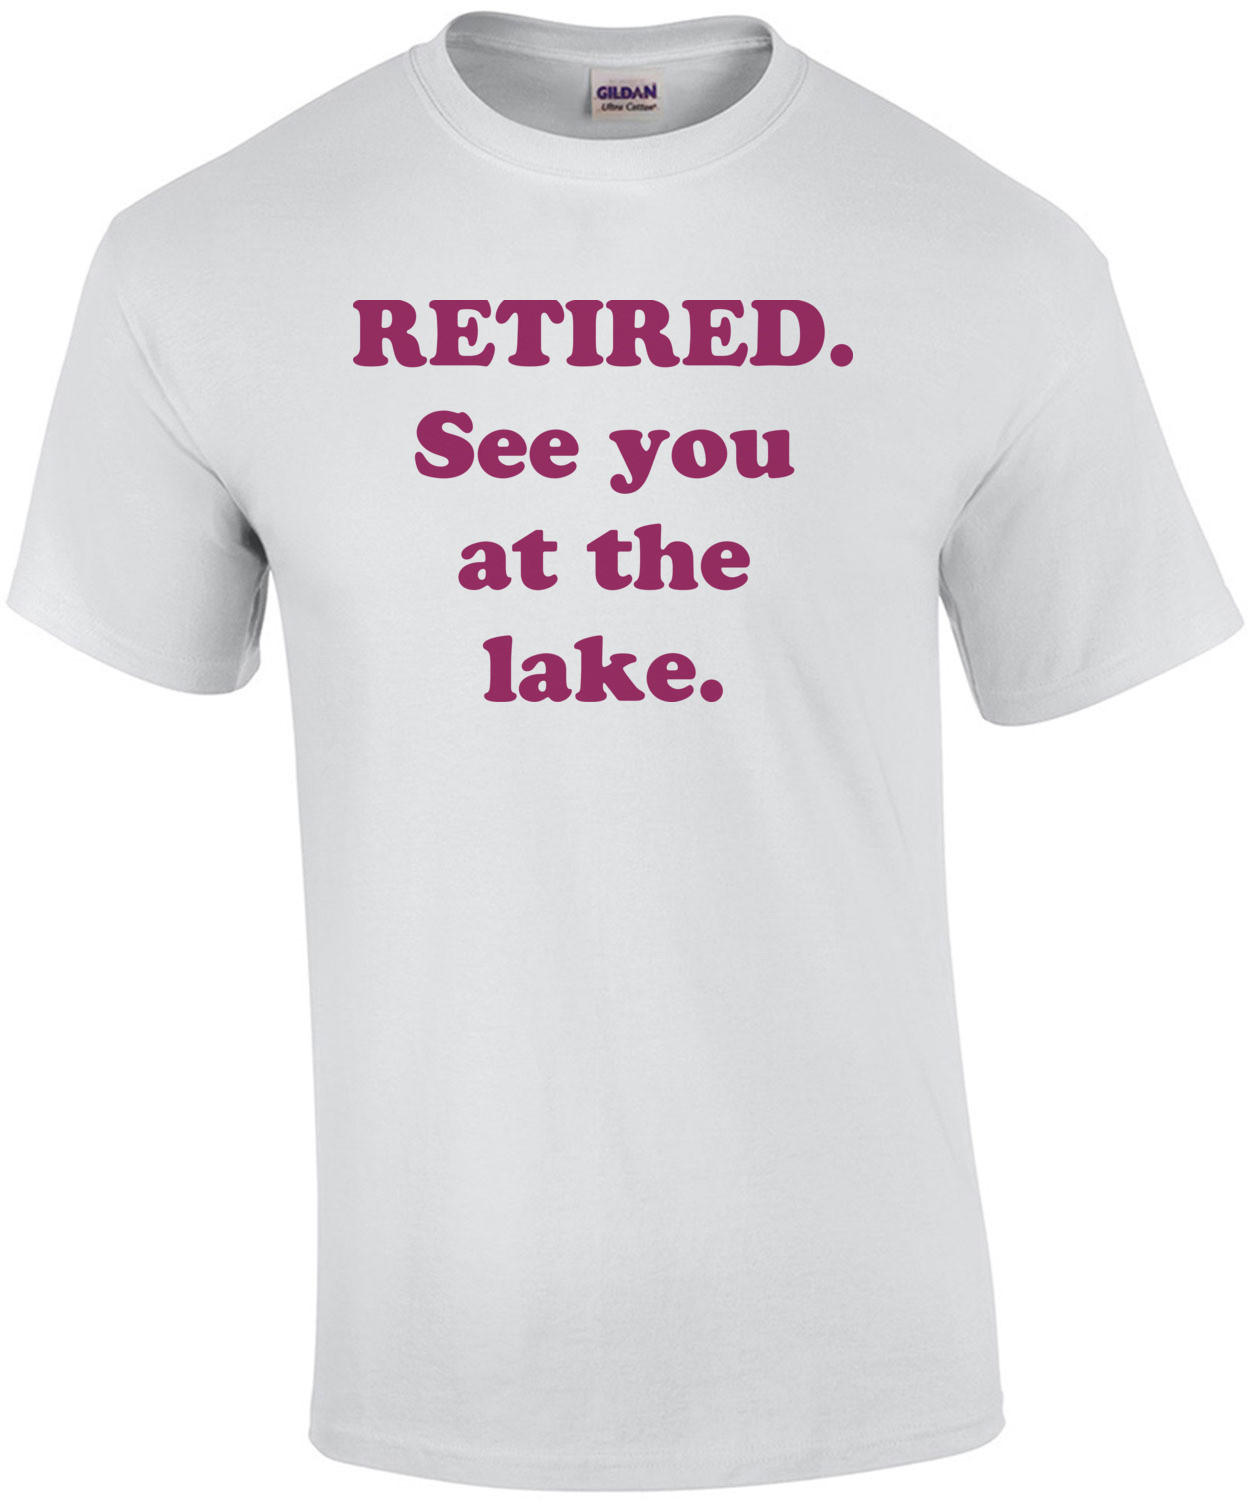 RETIRED. See you at the lake. Shirt